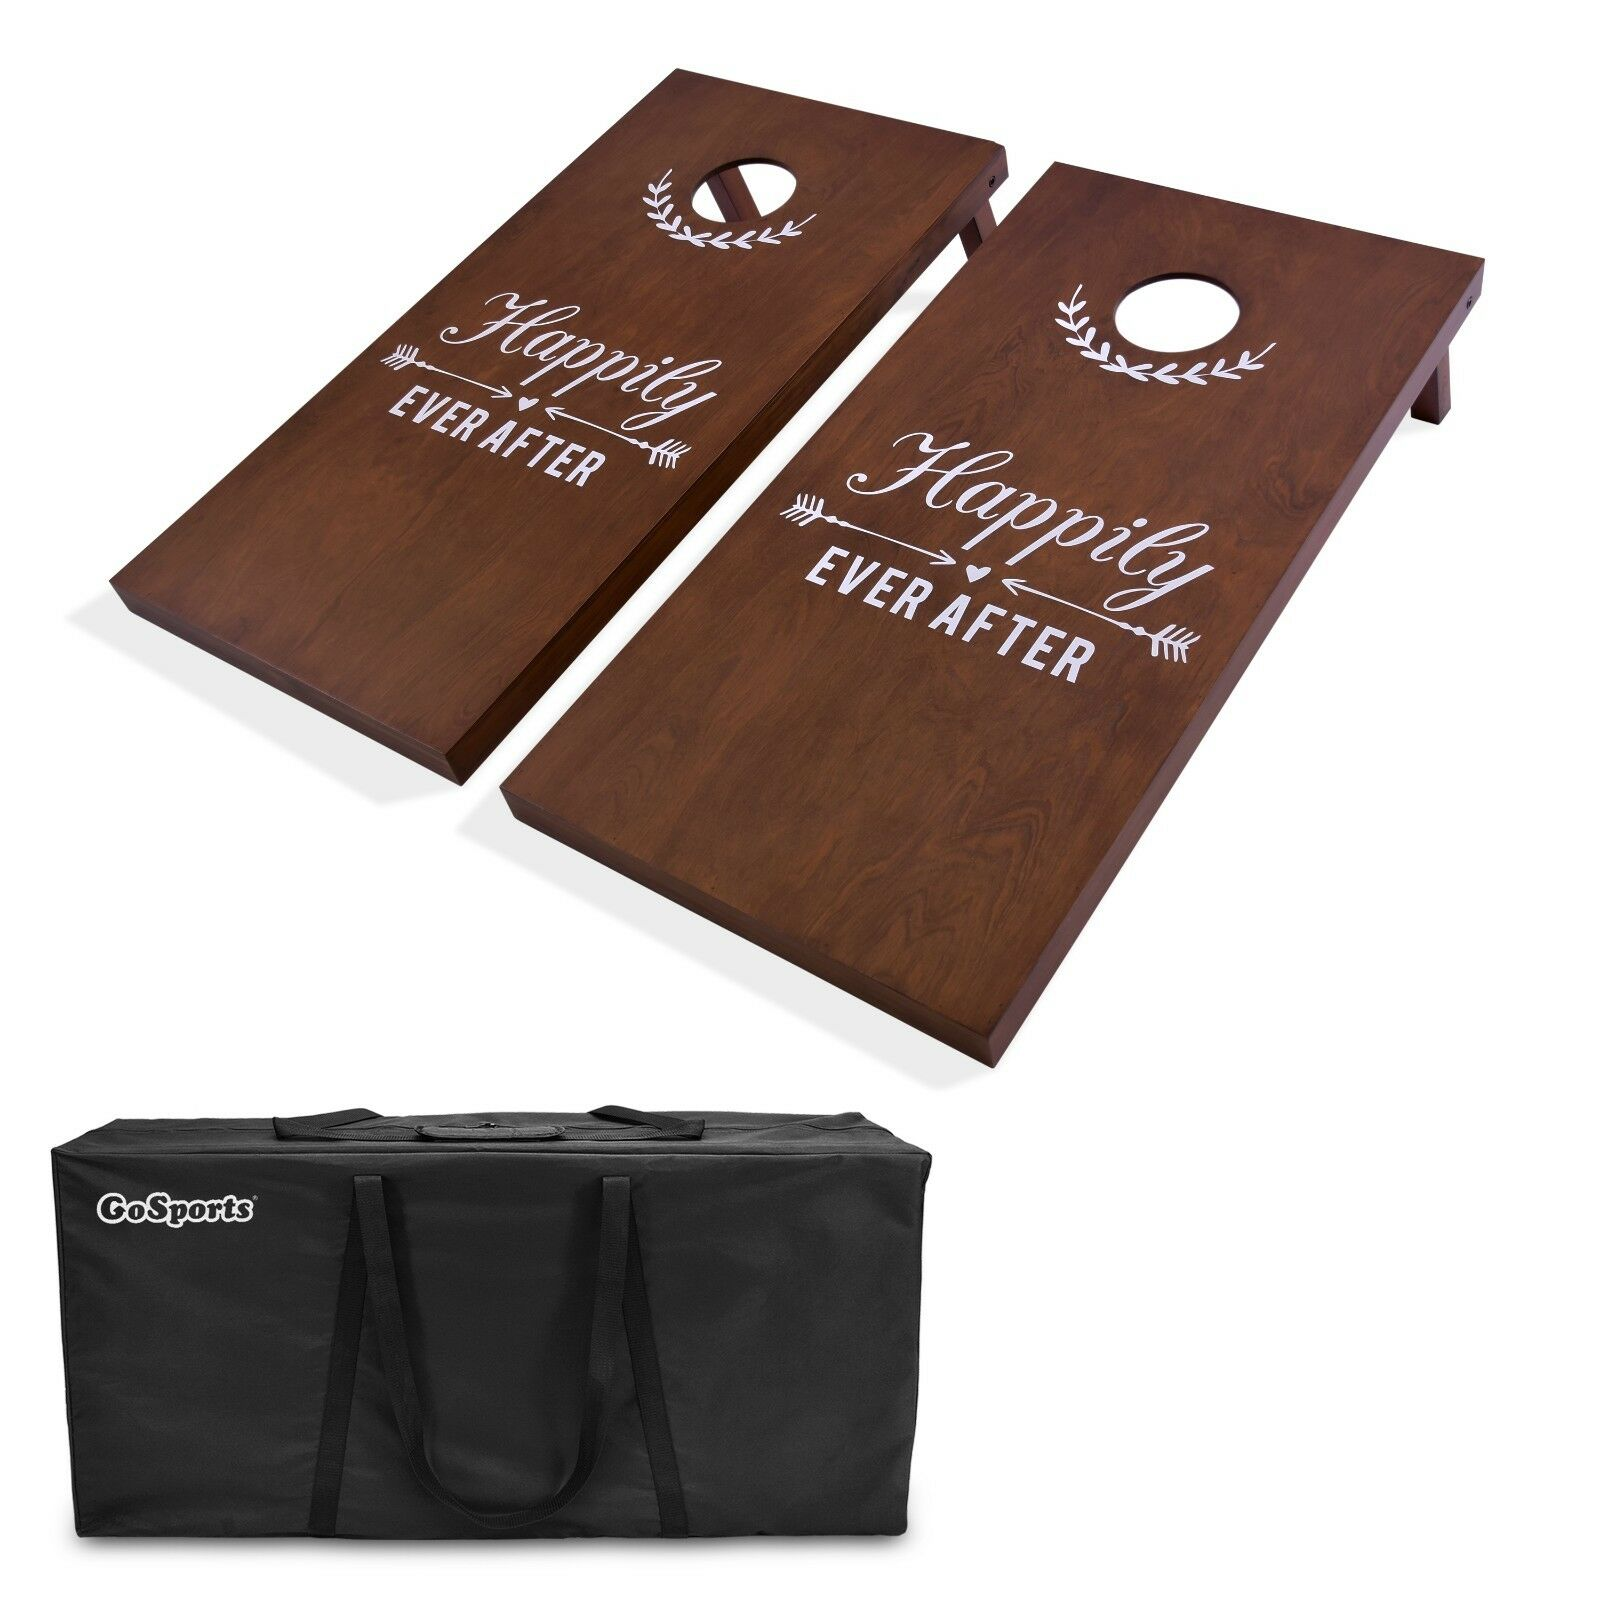 Gosports Wedding Design Cornhole Boards Set Happily Ever After Monogram Laurel